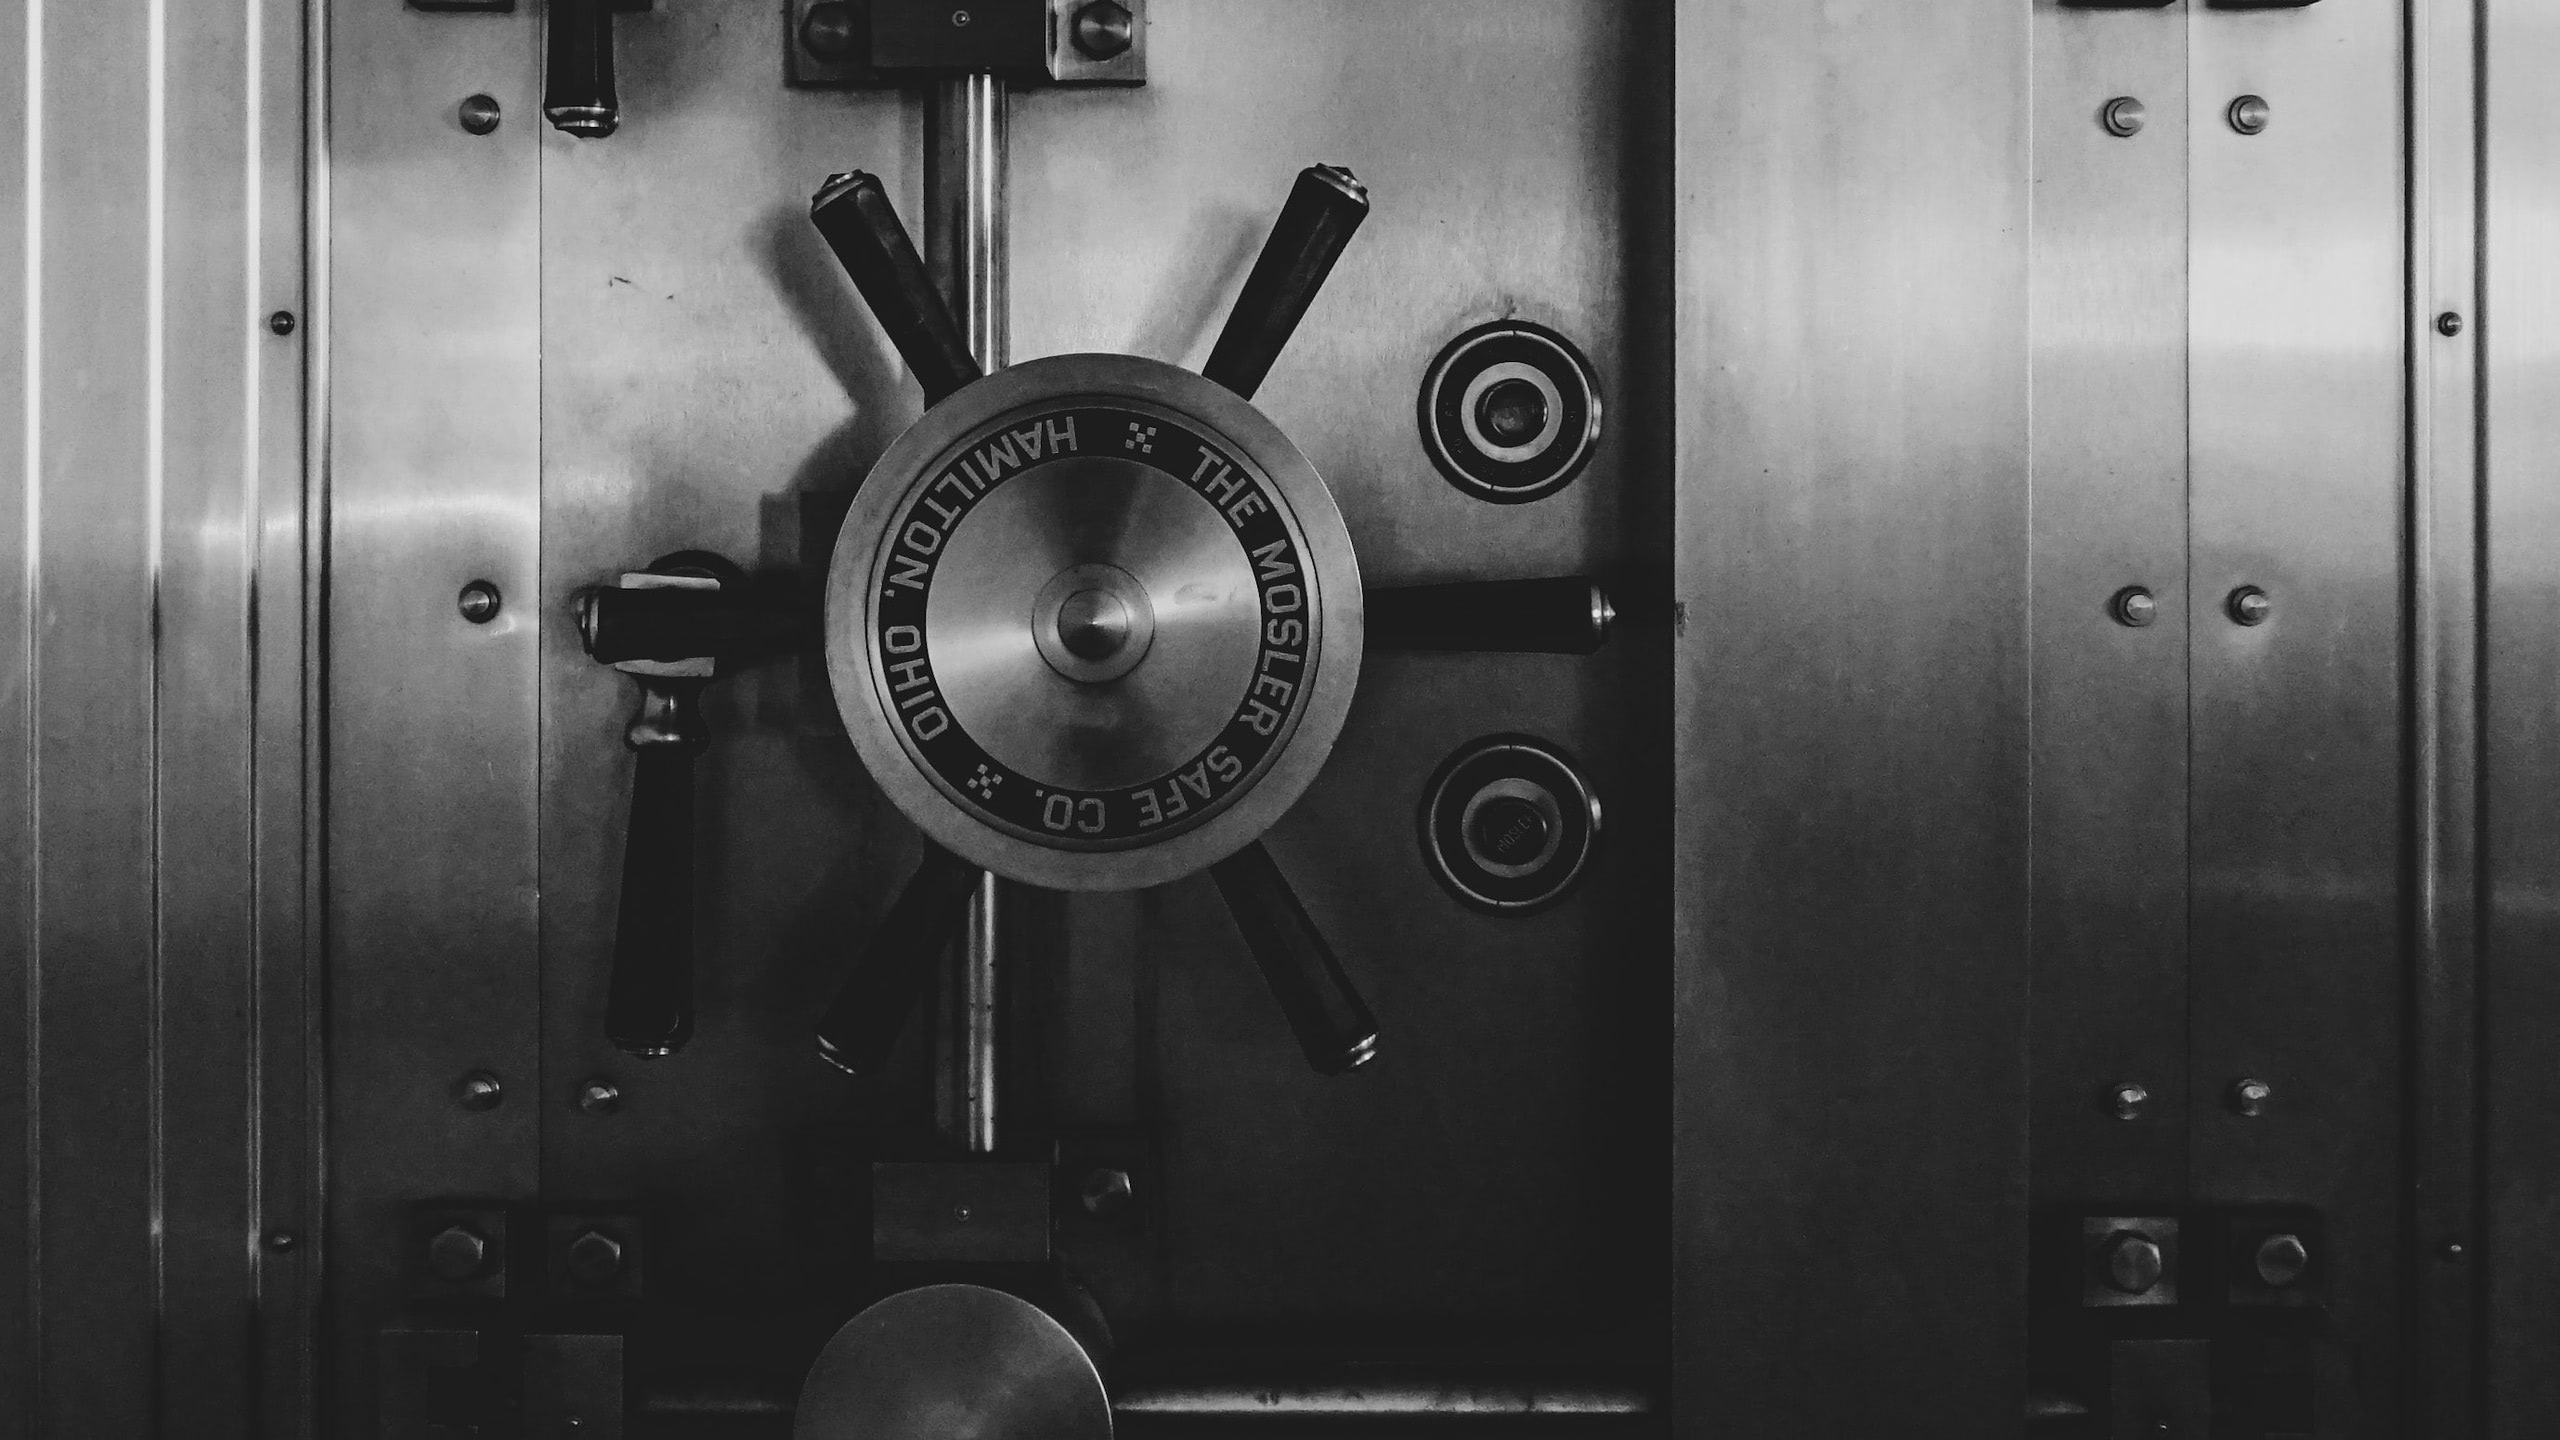 Black and white photo of a bank vault door